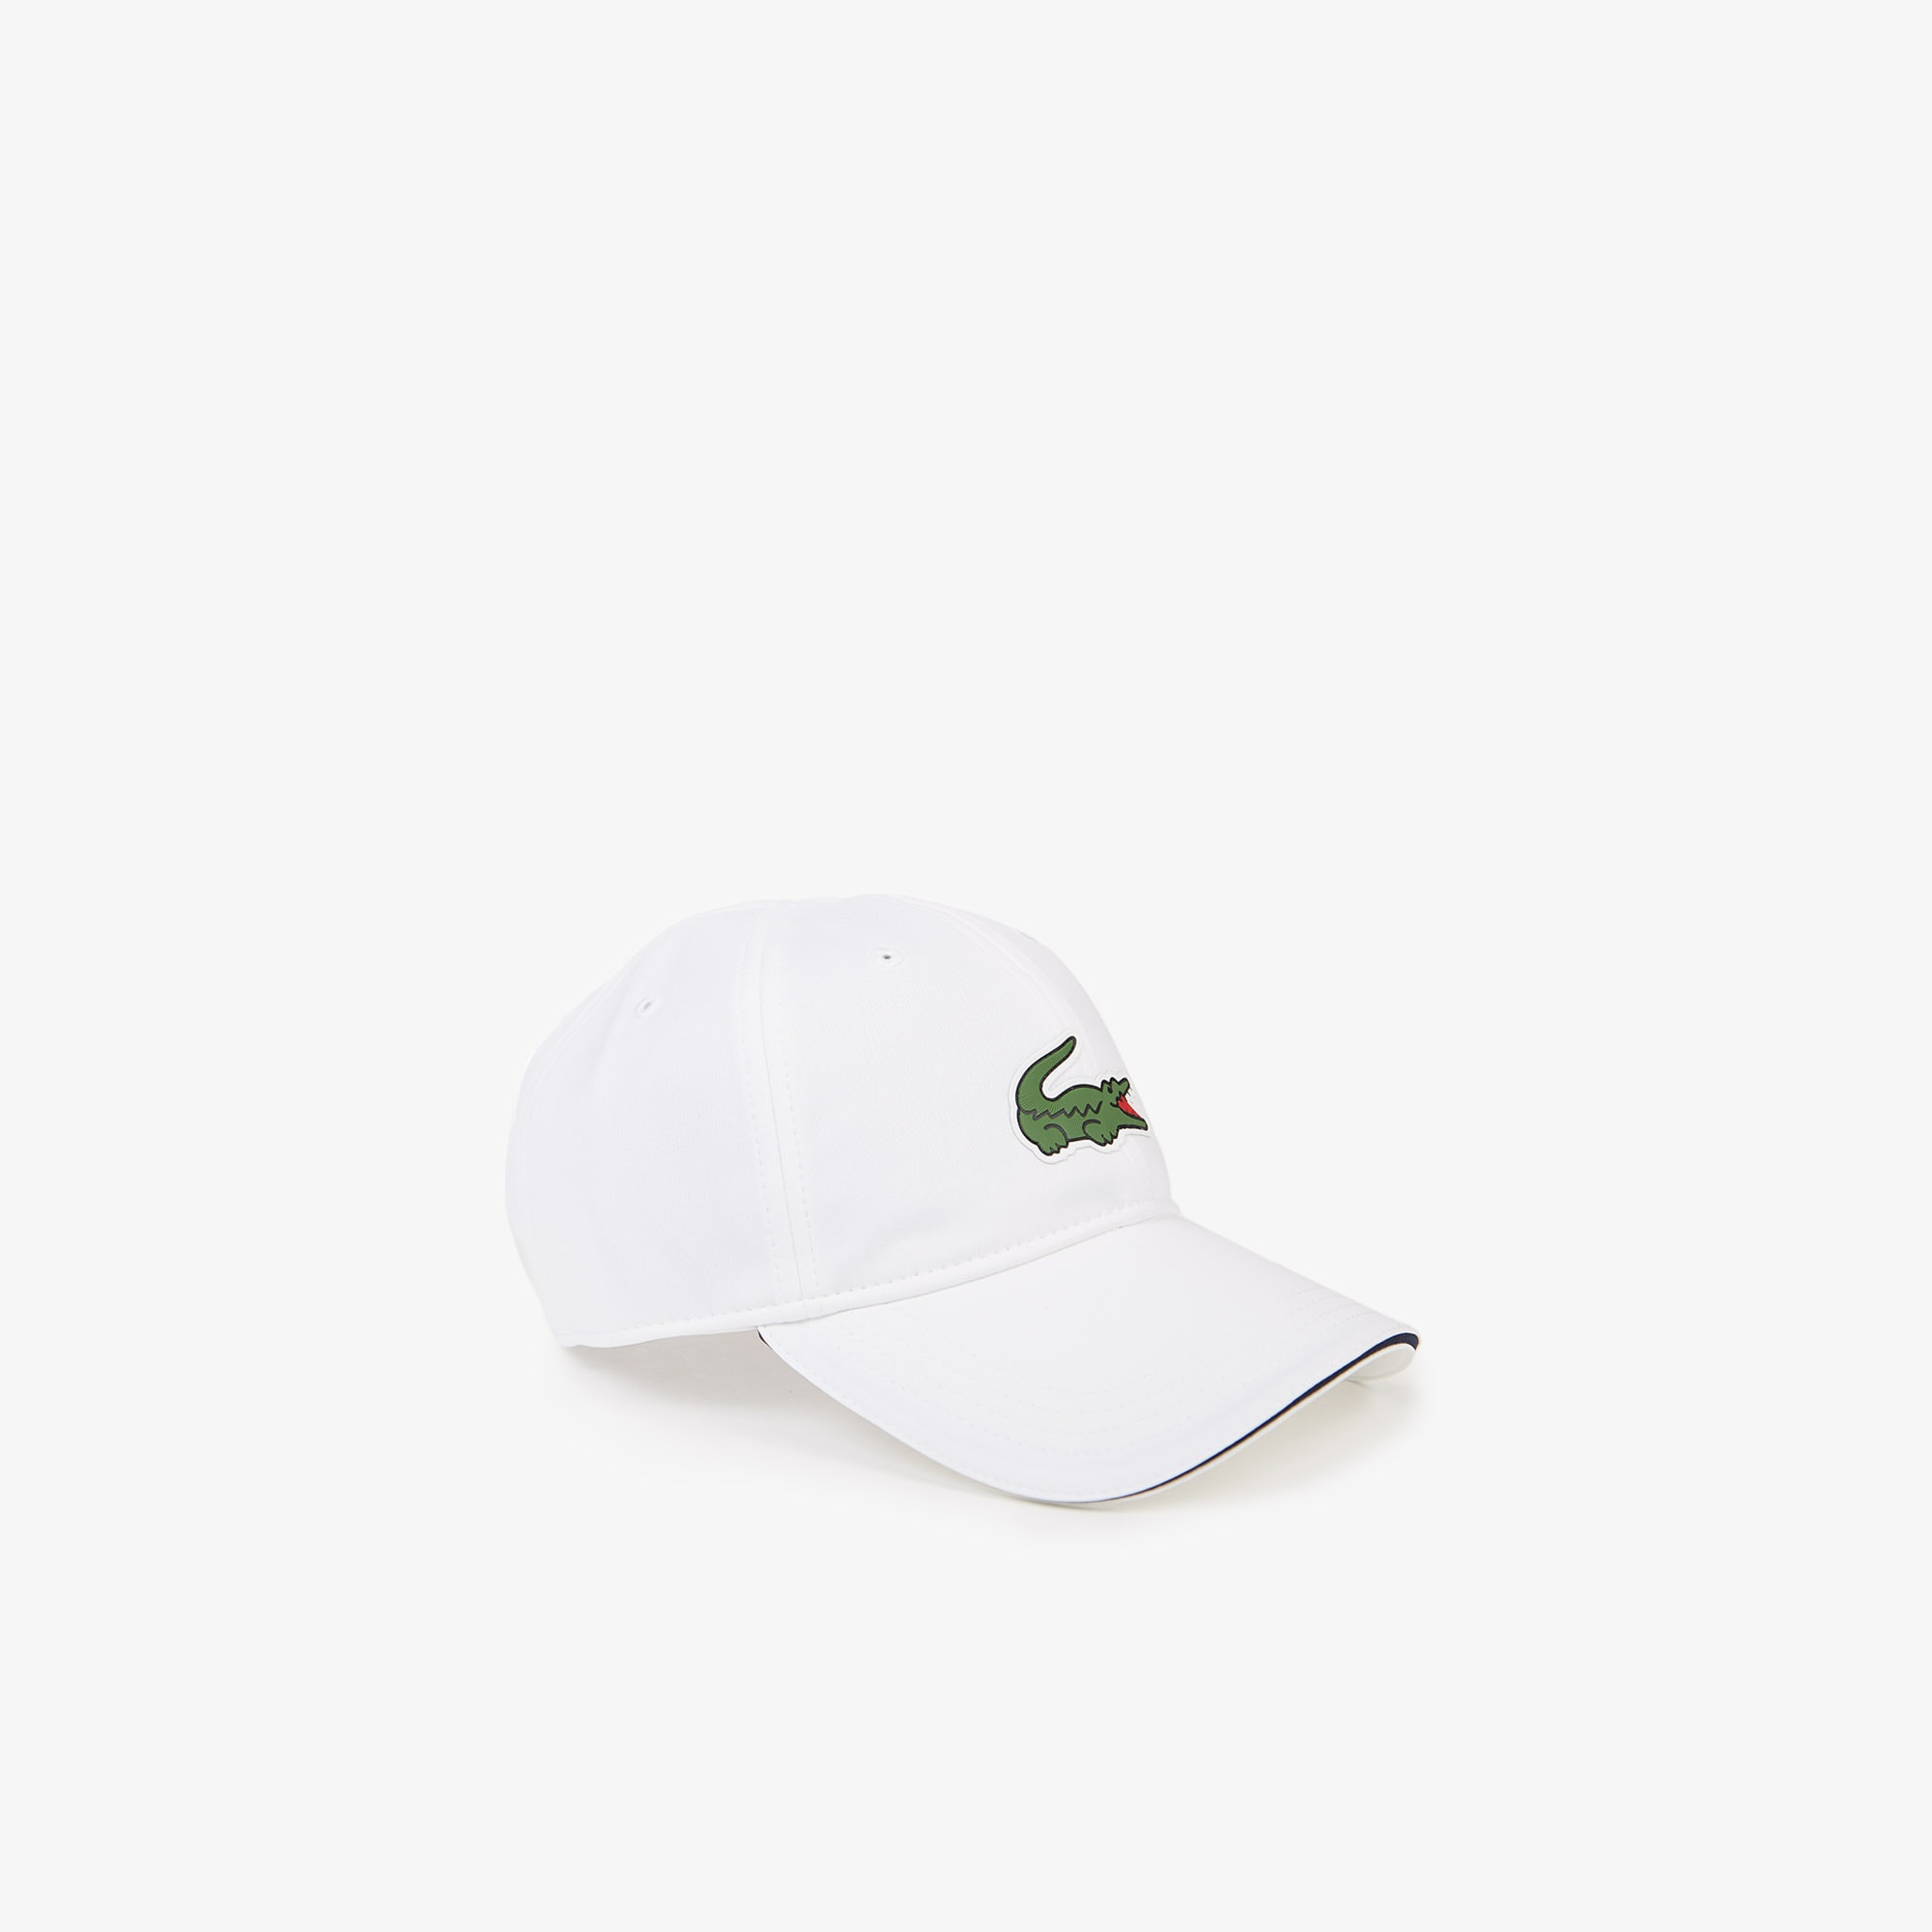 Unisex SPORT Miami Open Technical Jersey Tennis Cap